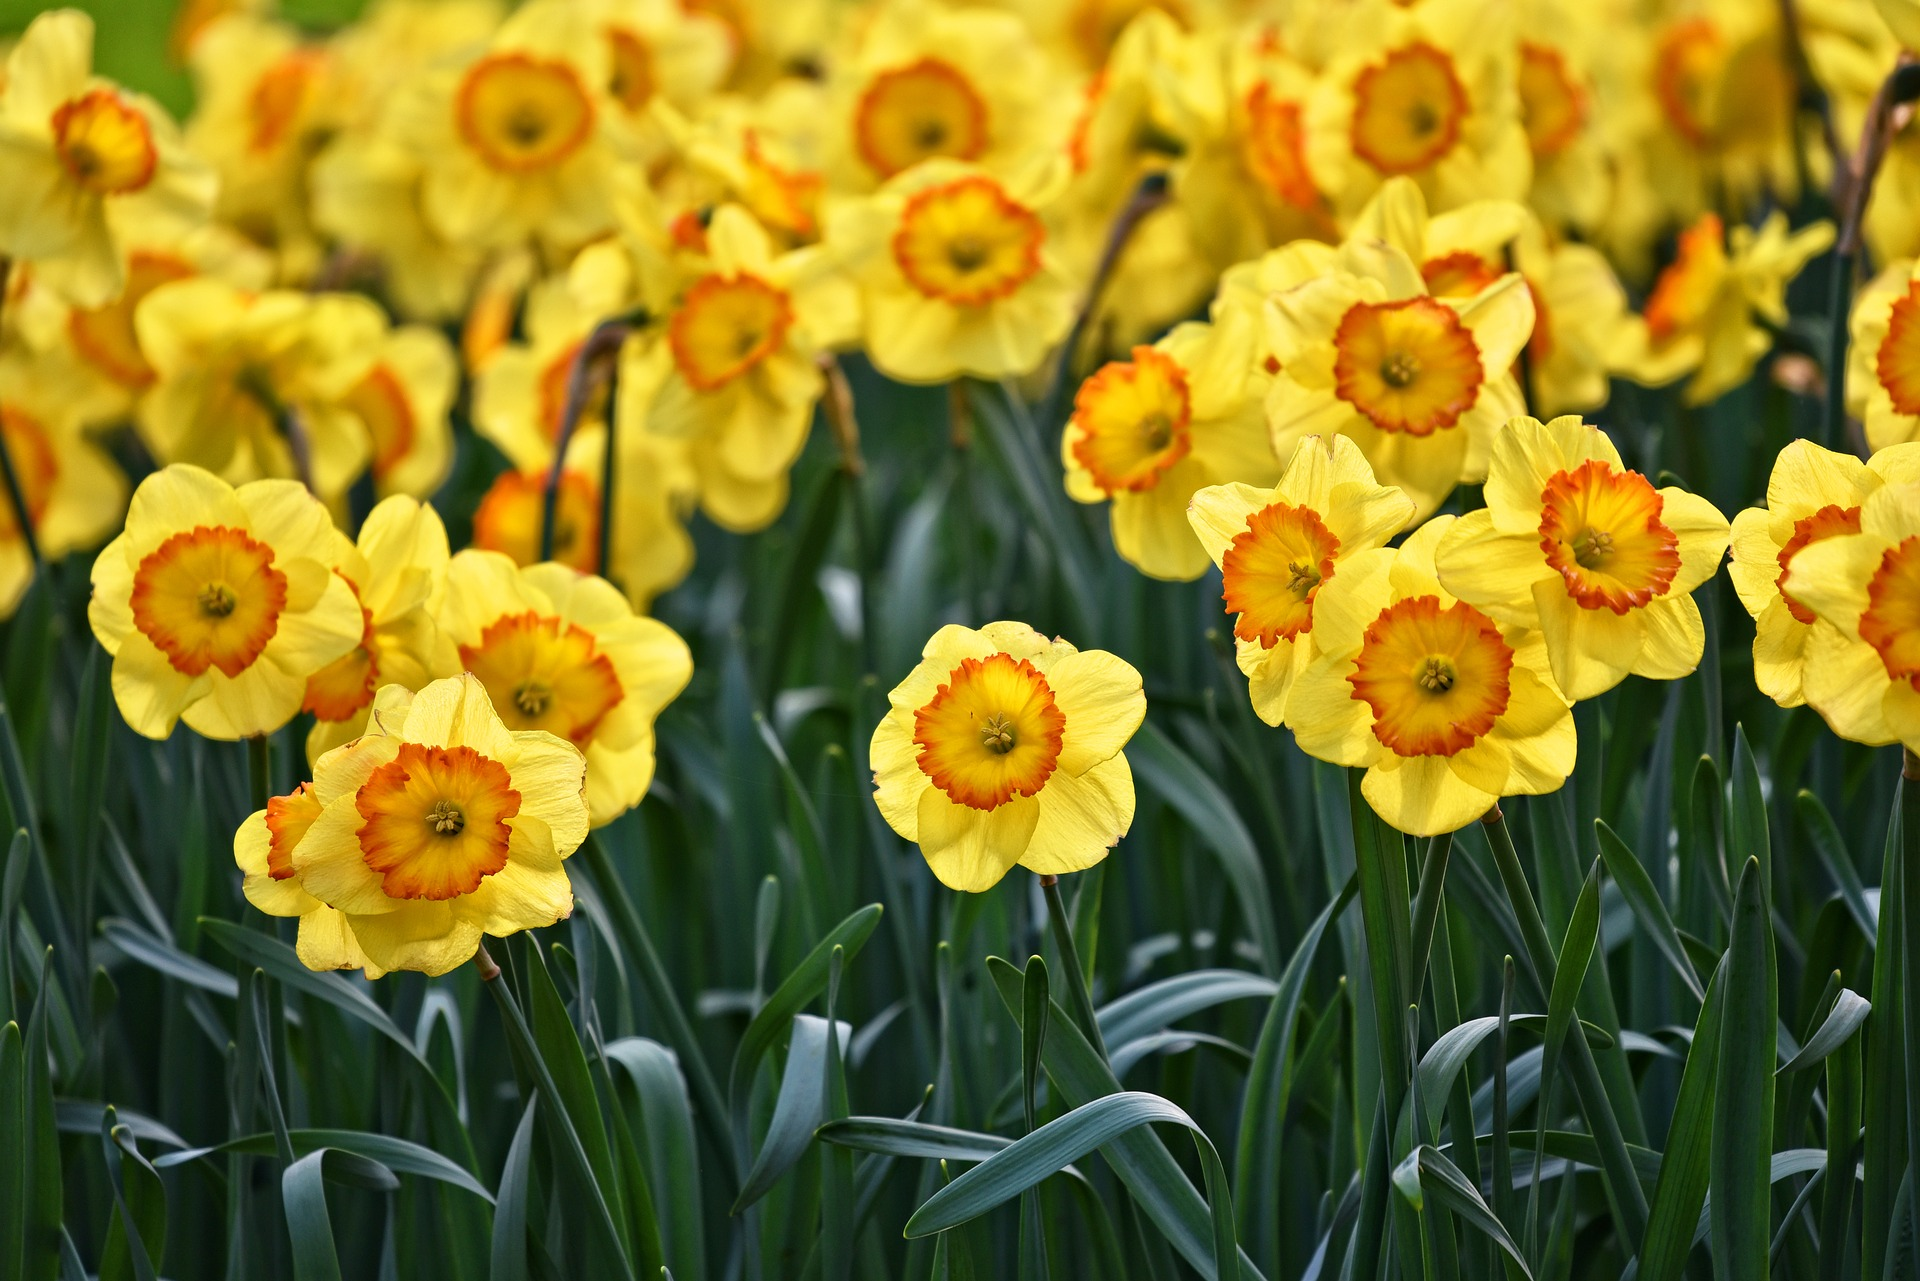 Daffodils for March